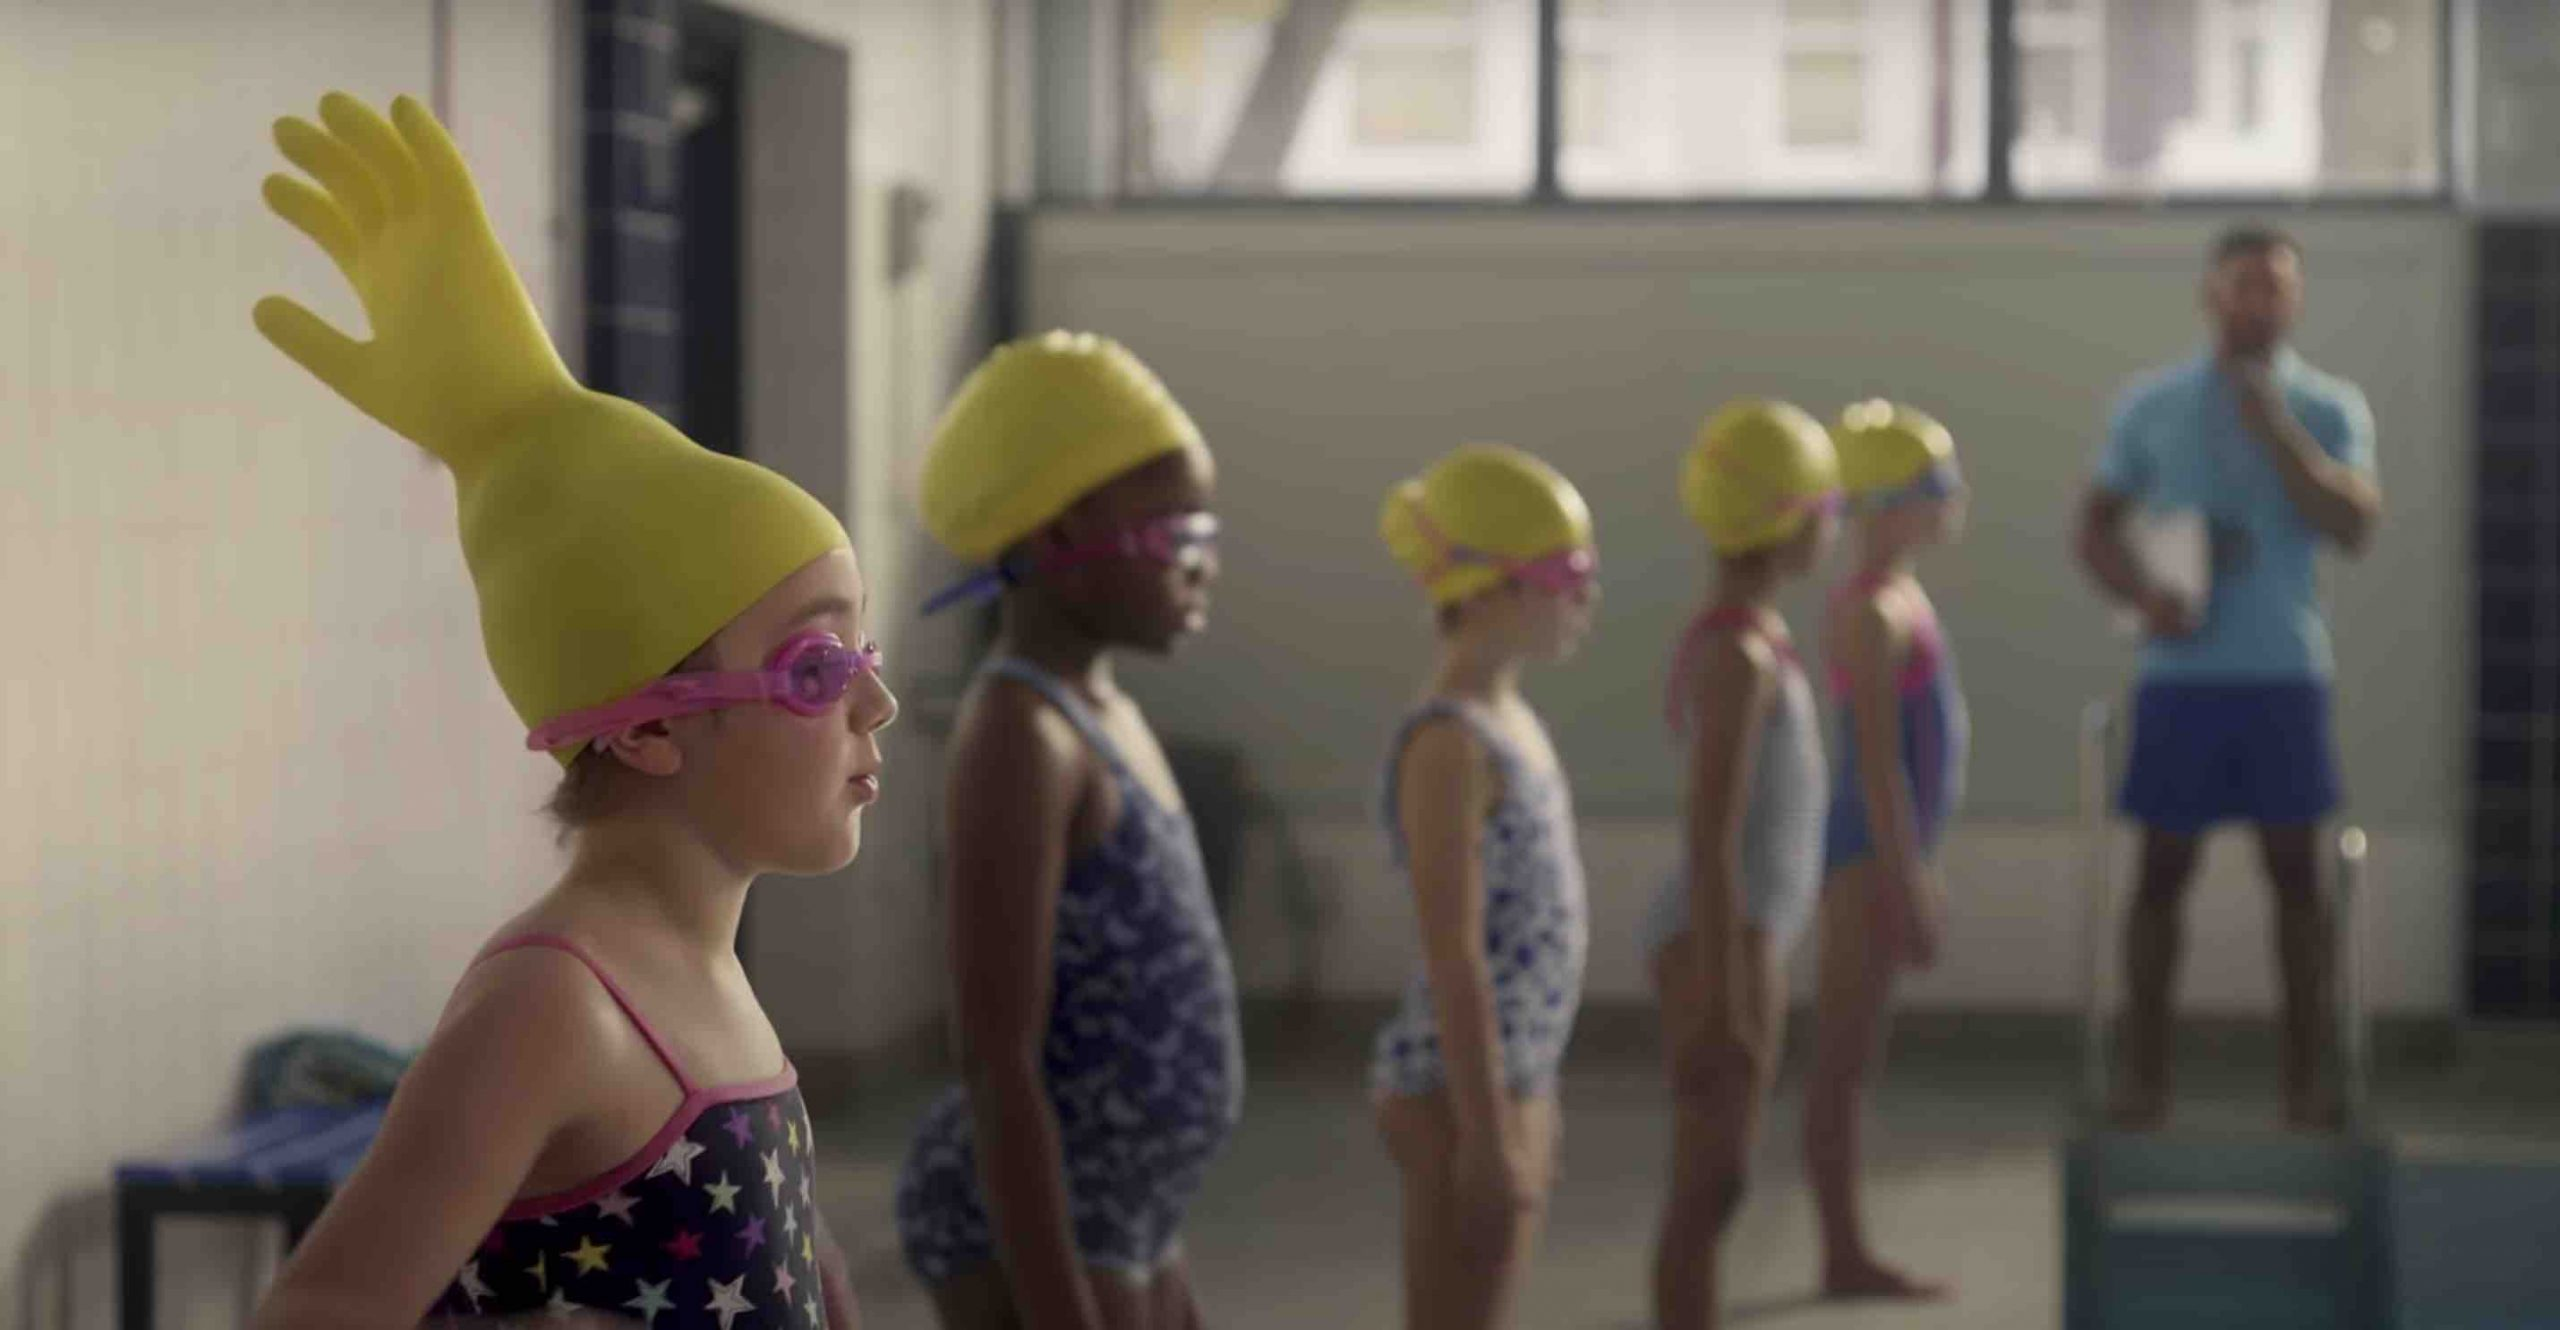 Swimming girl with rubber glove on her head from a funny McDonald's advert